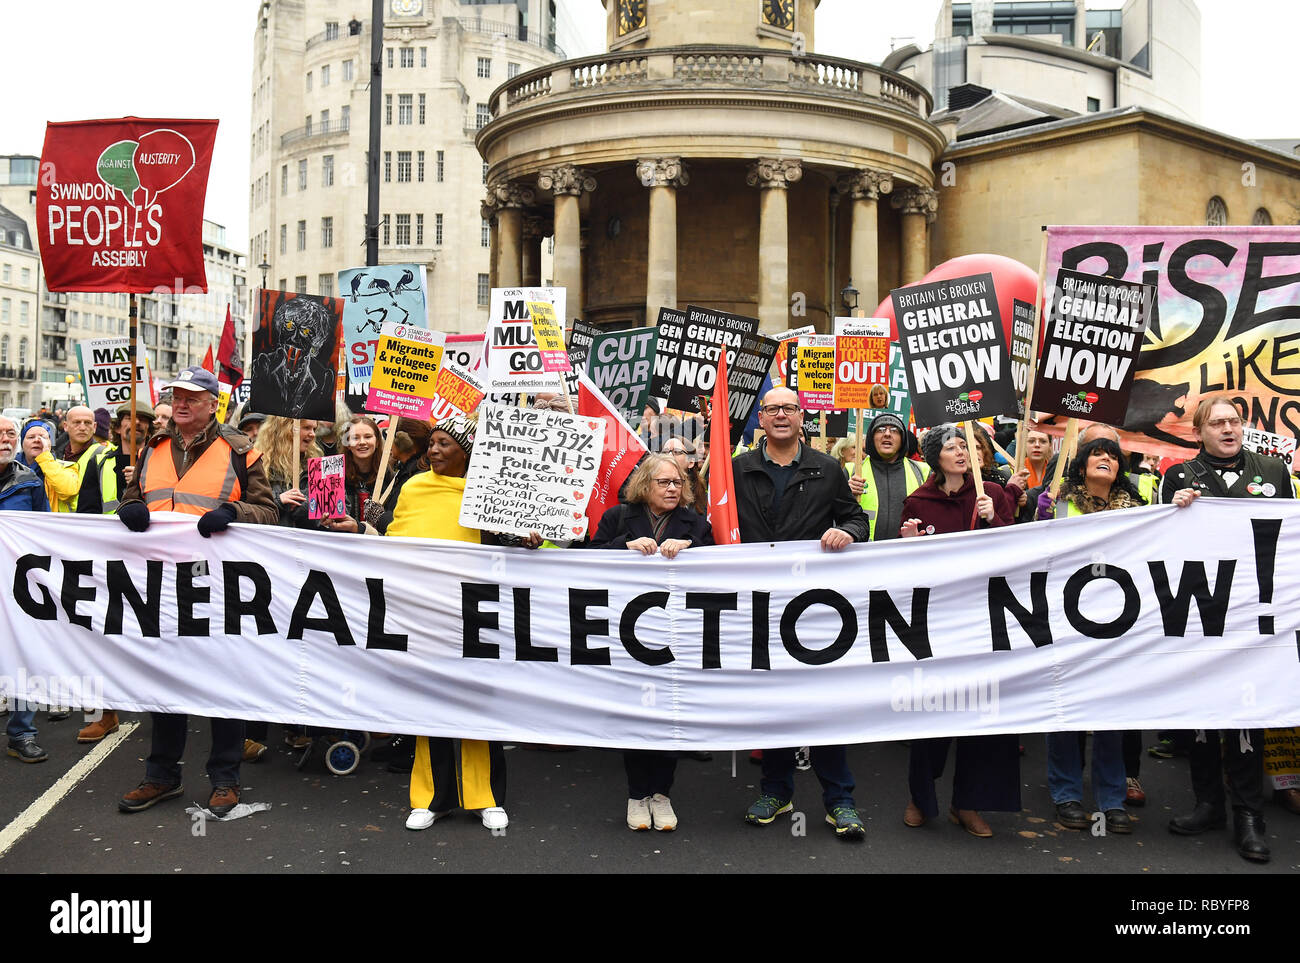 Demonstrators at a People's Assembly Against Austerity 'yellow vest'-inspired rally in central London calling for a general election. - Stock Image